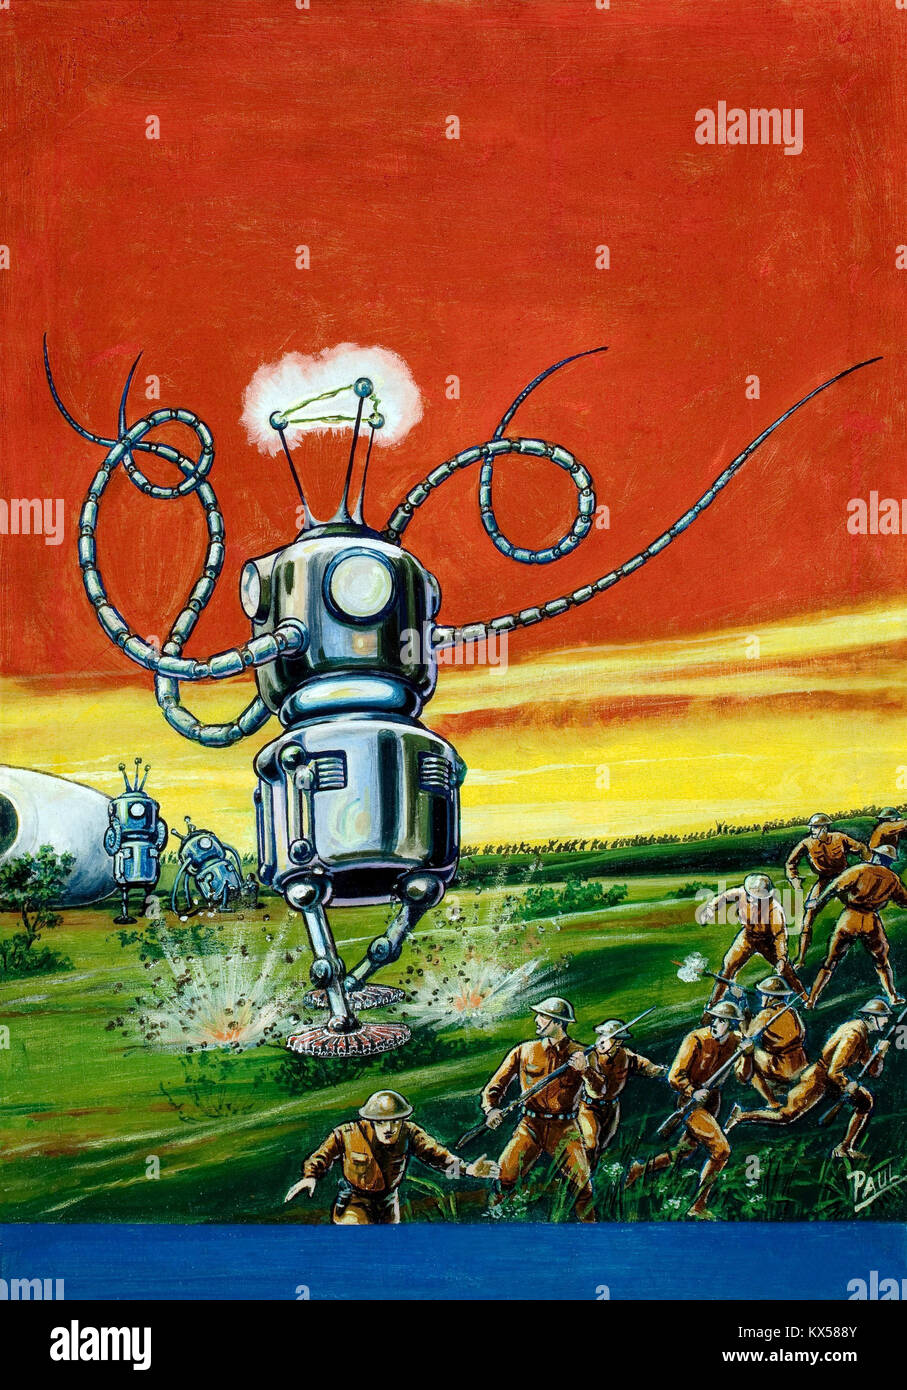 The Robot Aliens - Stock Image